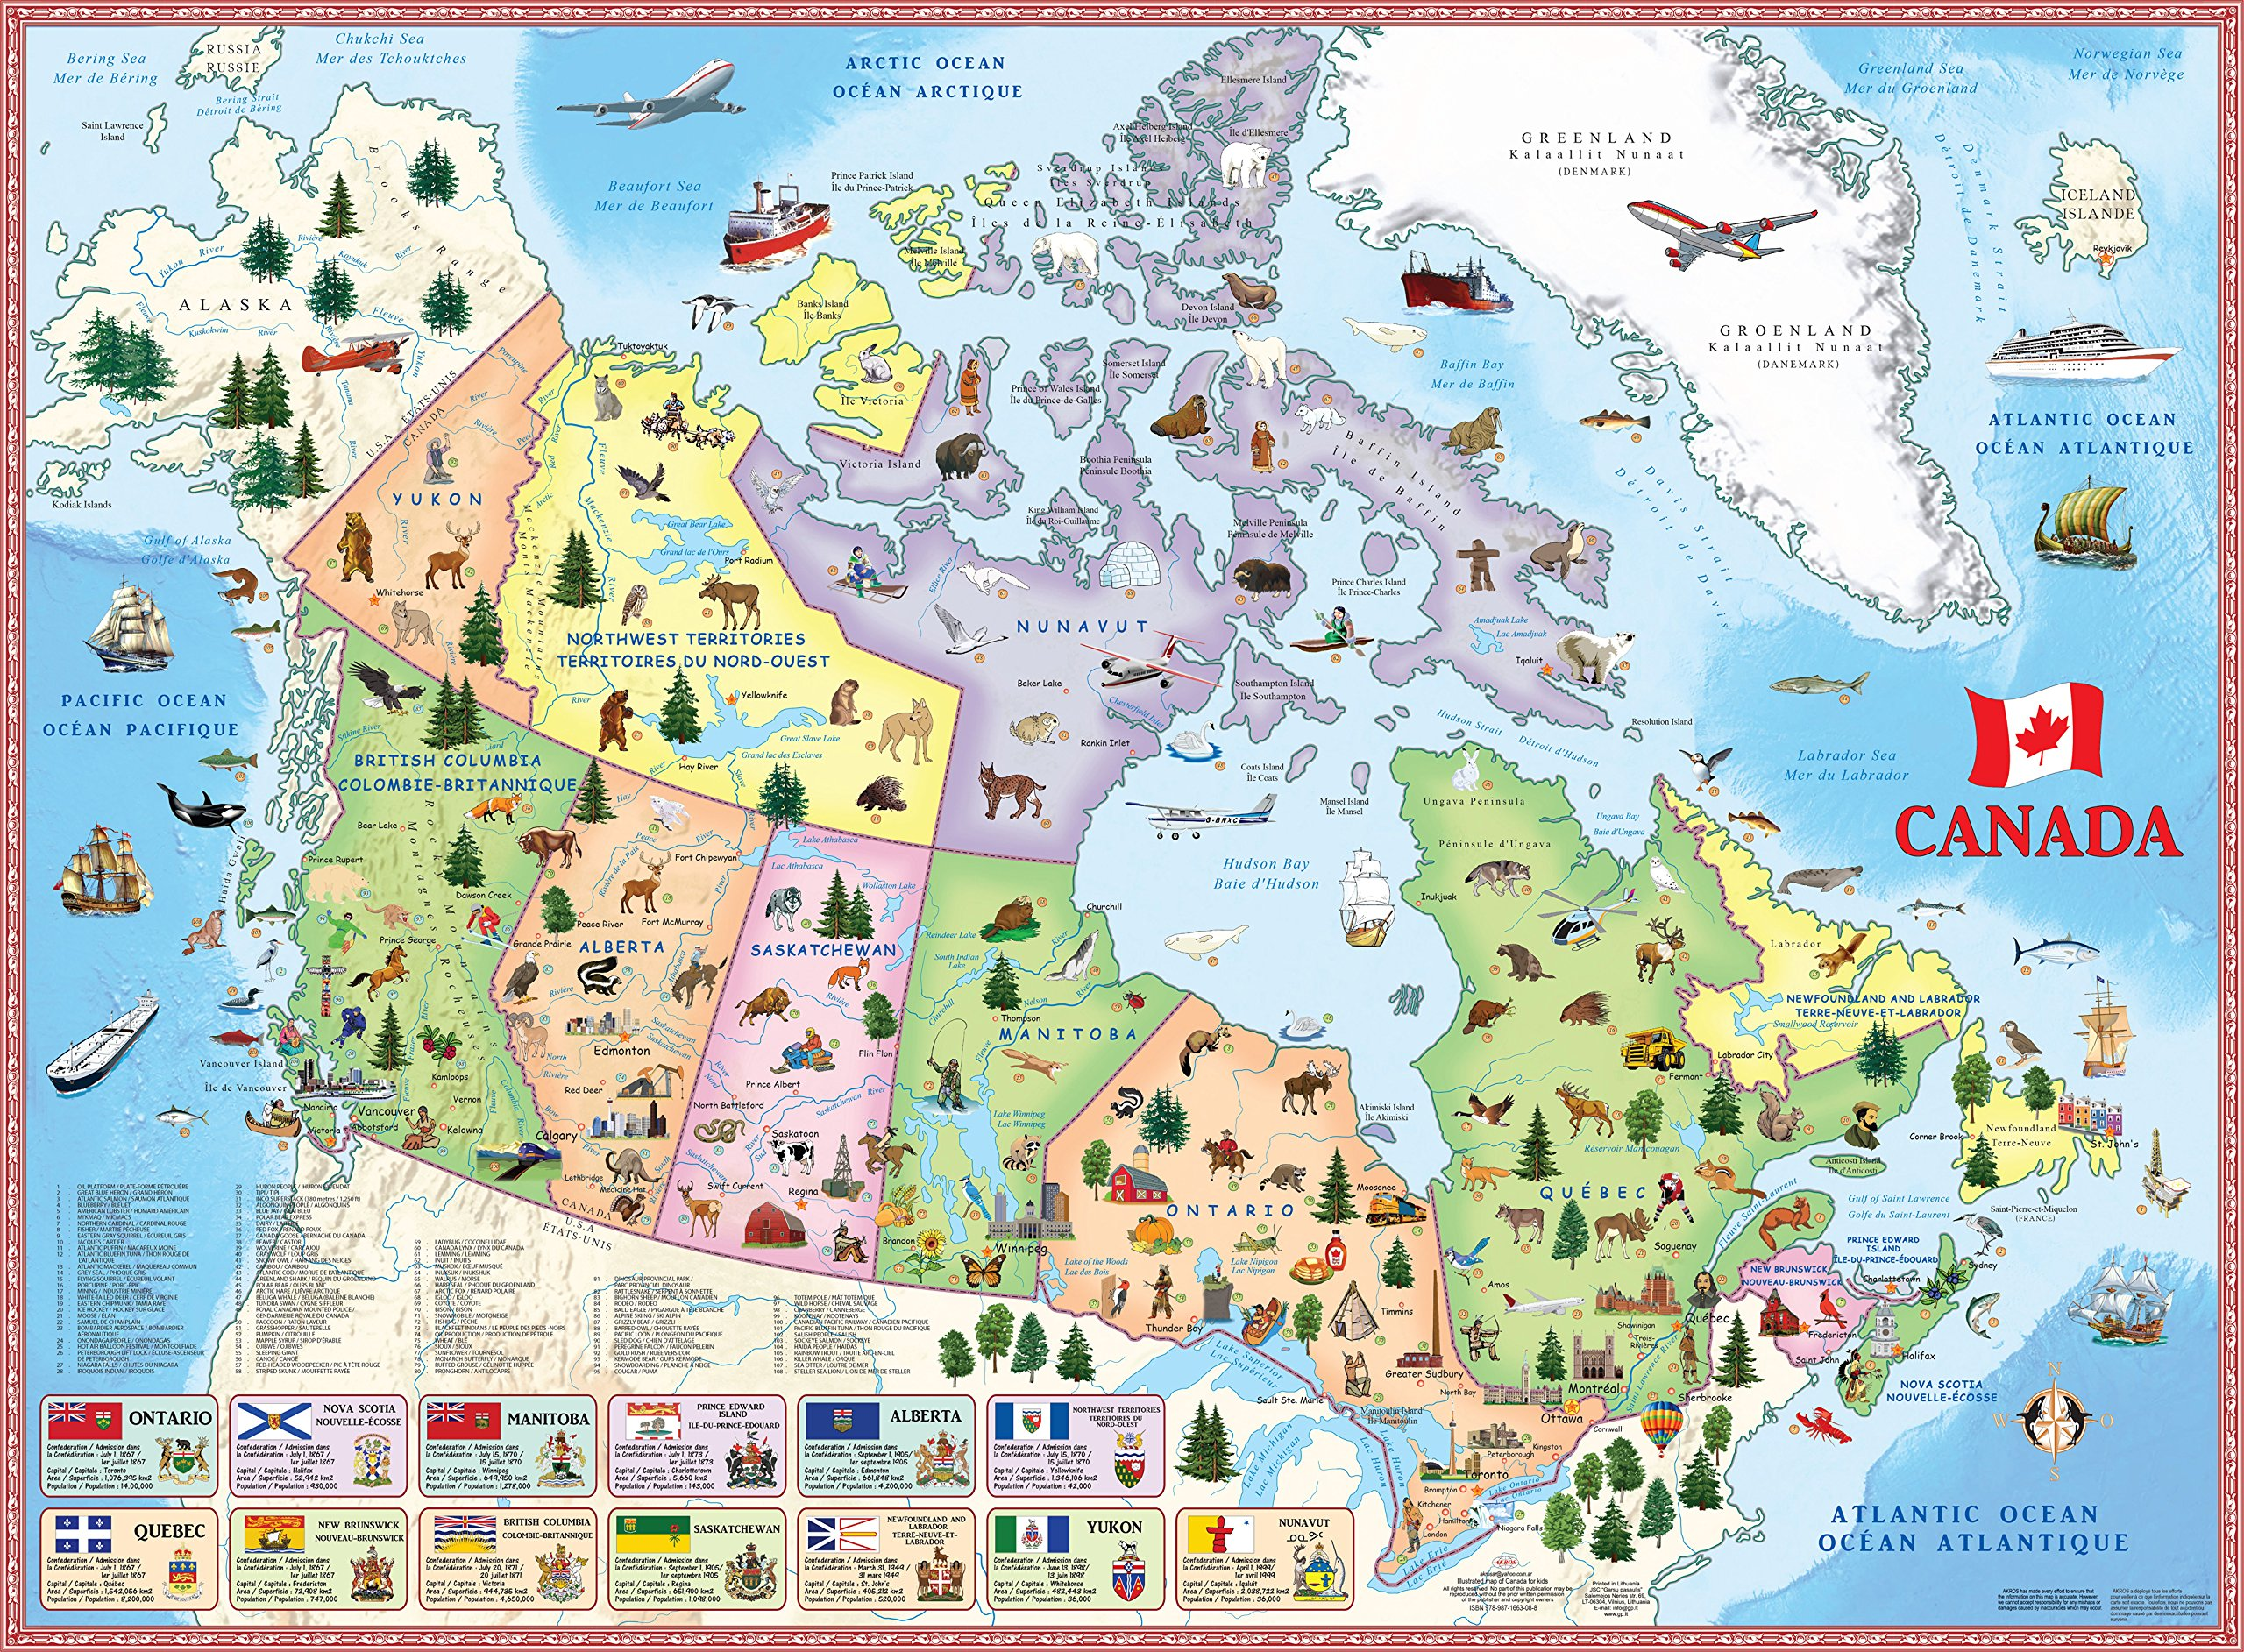 Map Of Canada Images.Illustrated Map Of Canada For Kids Akros 9789871663088